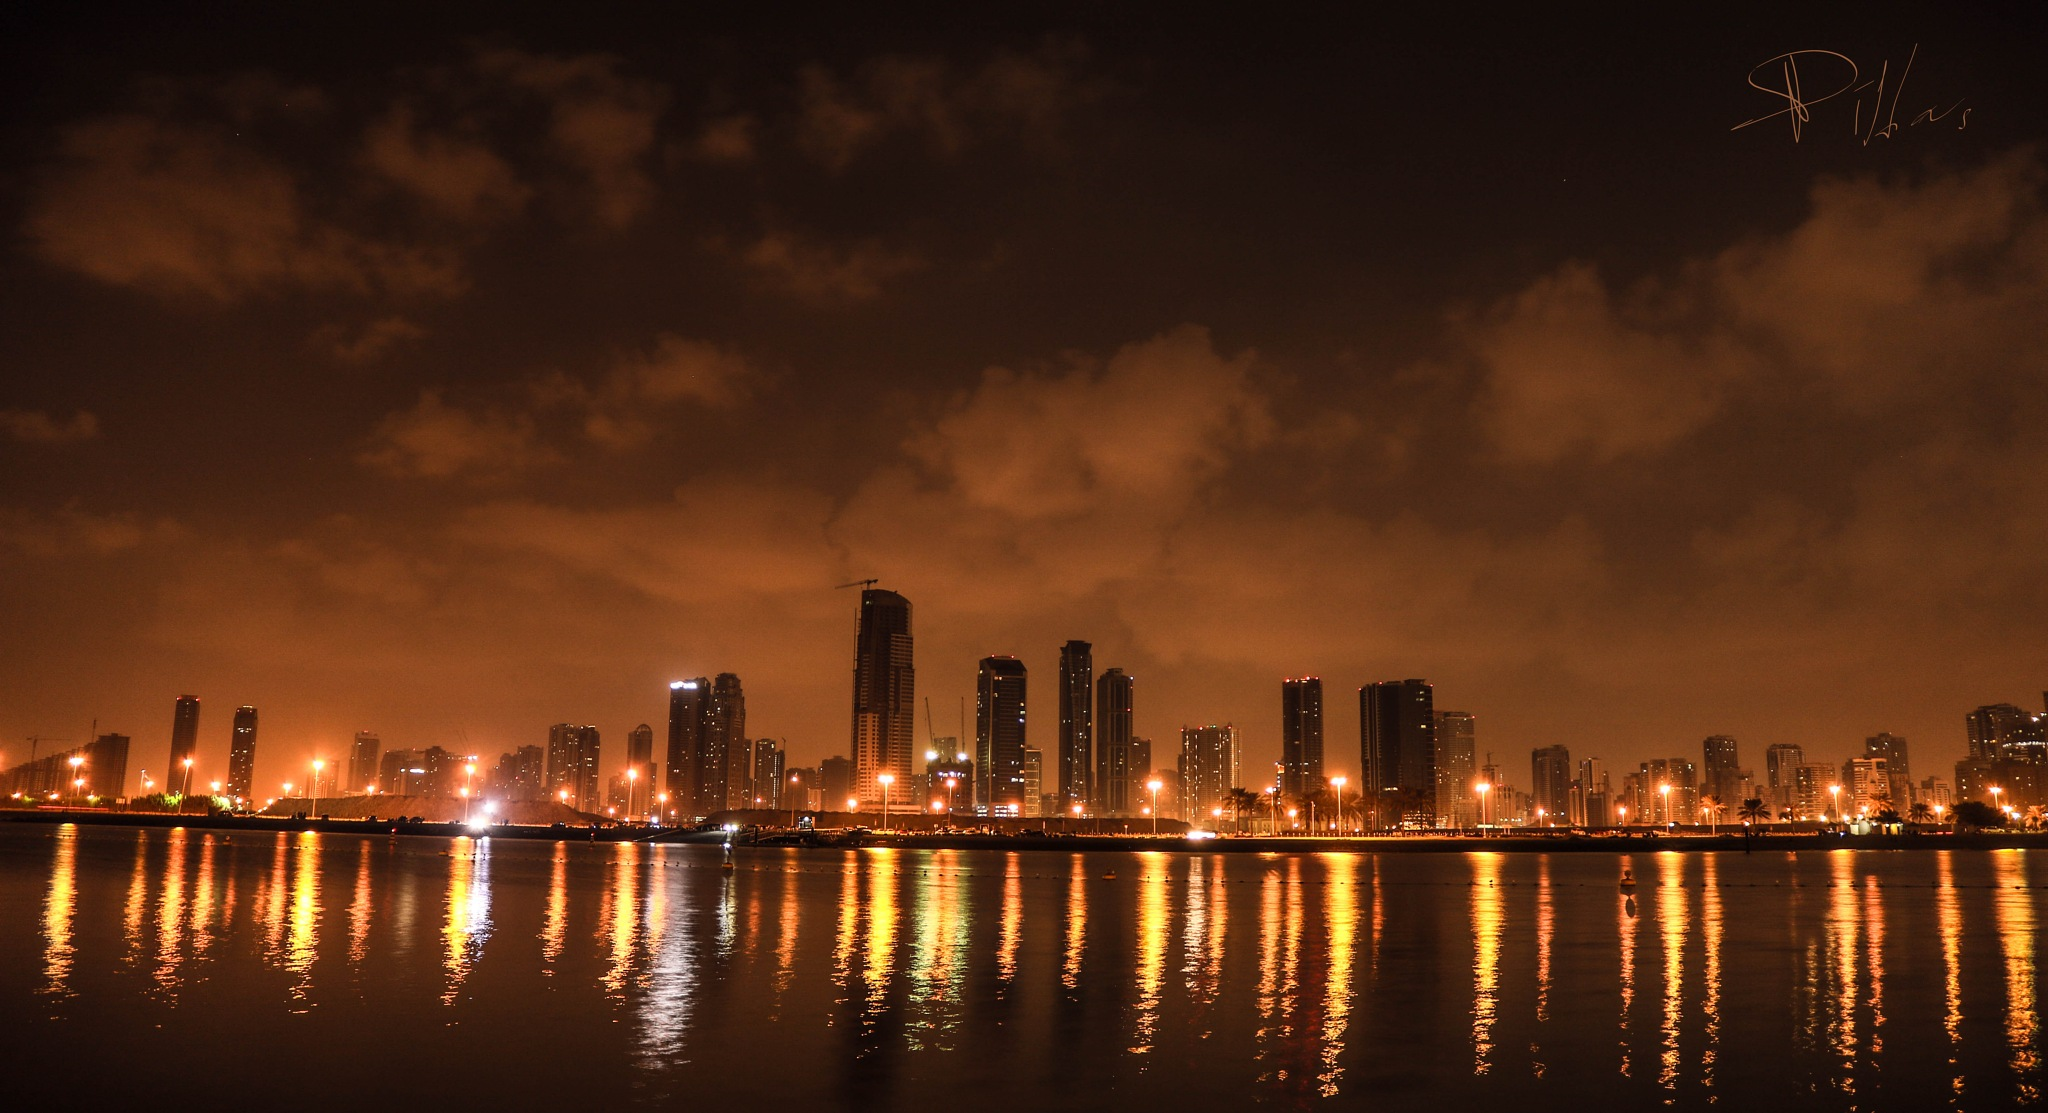 BEACH NIGHT VIEW by DIL